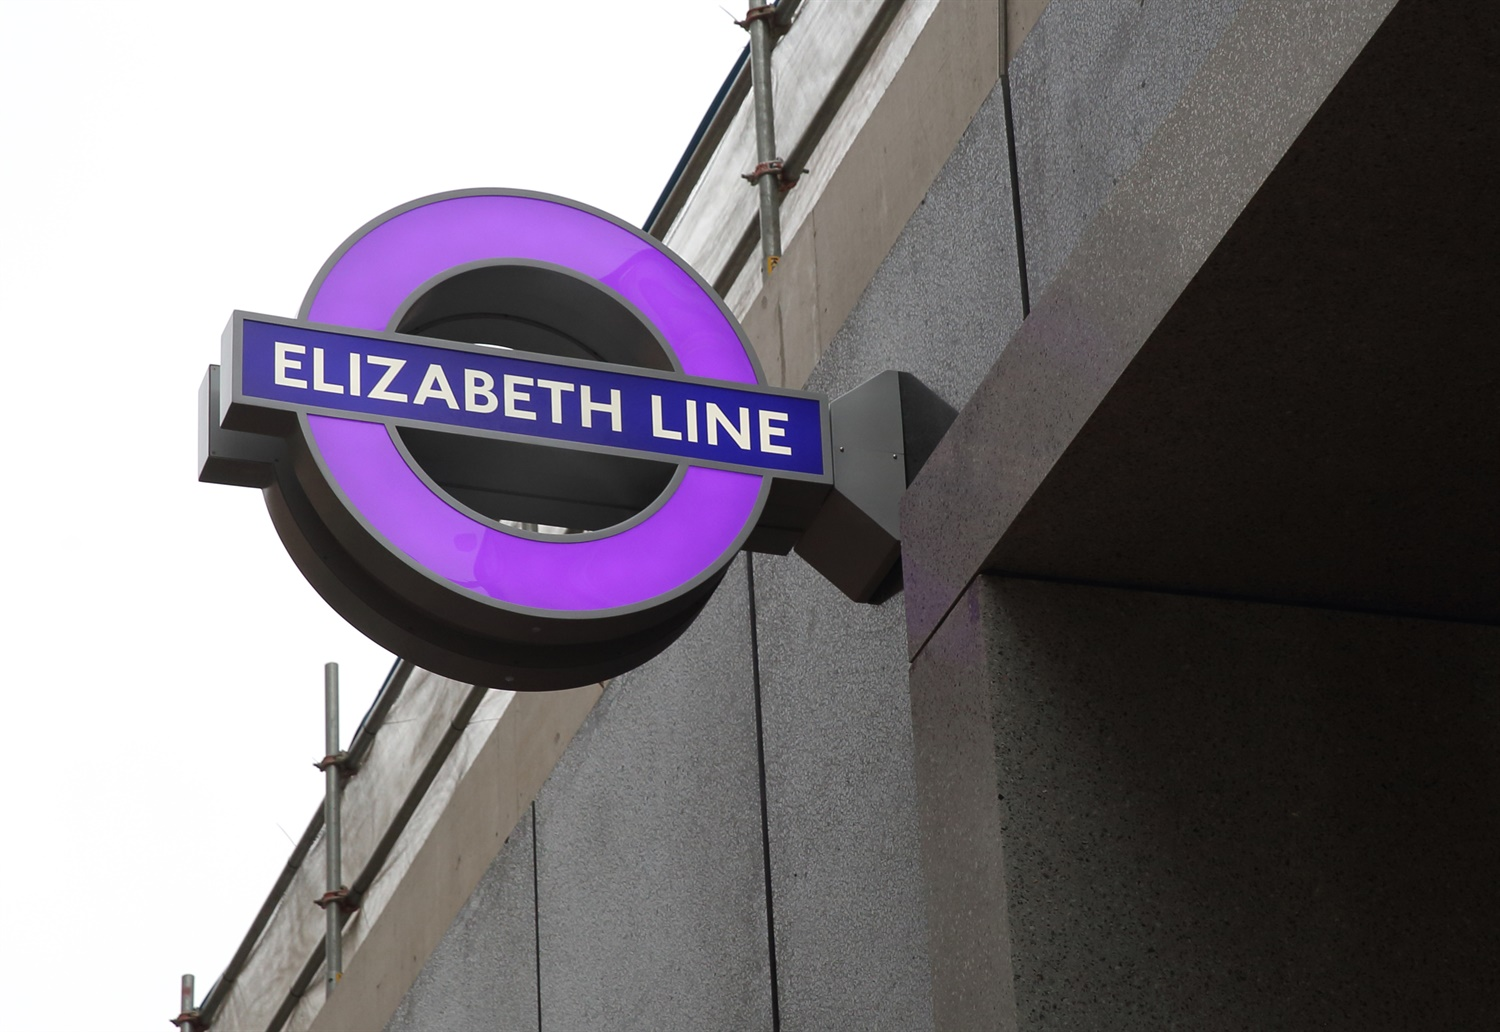 TfL installs first 'iconic' purple roundels ahead of historic Elizabeth Line opening